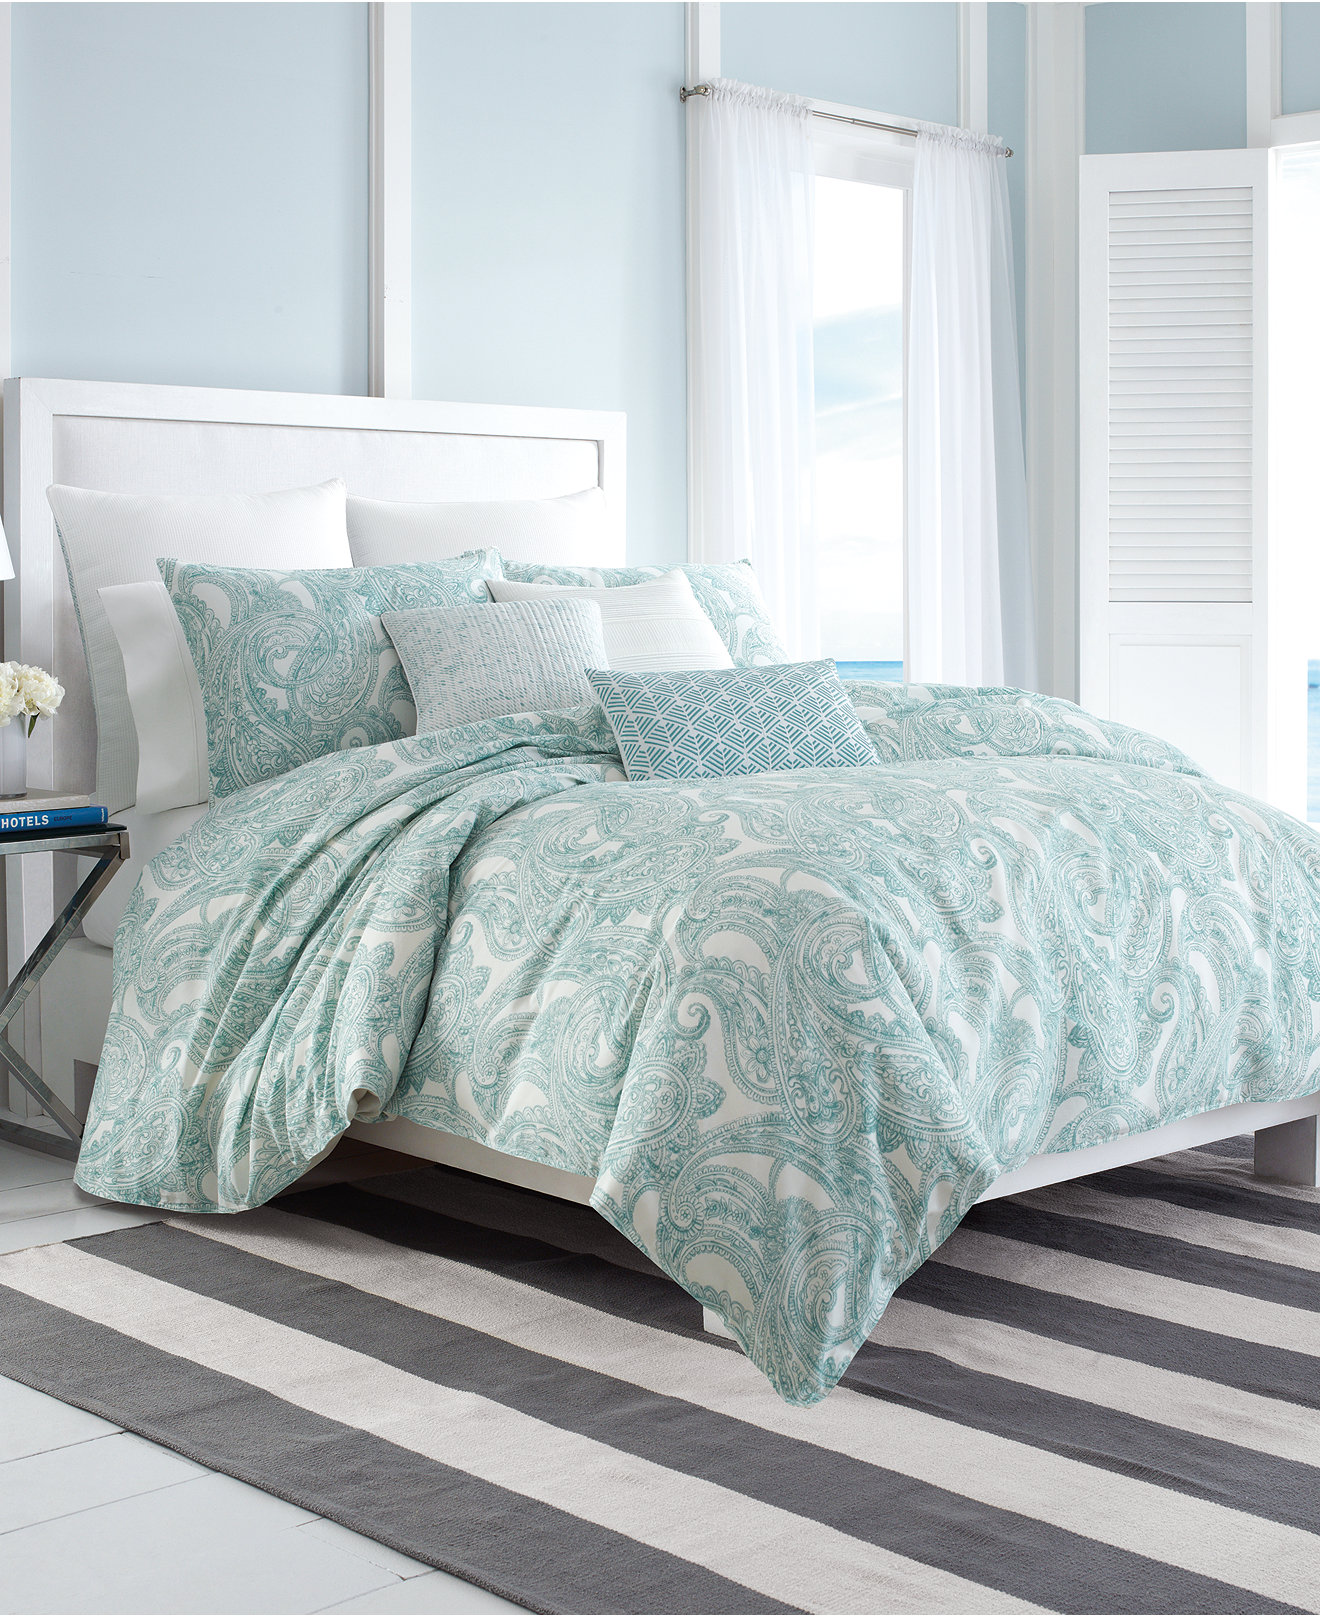 Nautica Long Bay King Sham - Bedding Collections - Bed & Bath - Macy's Bridal and Wedding Registry